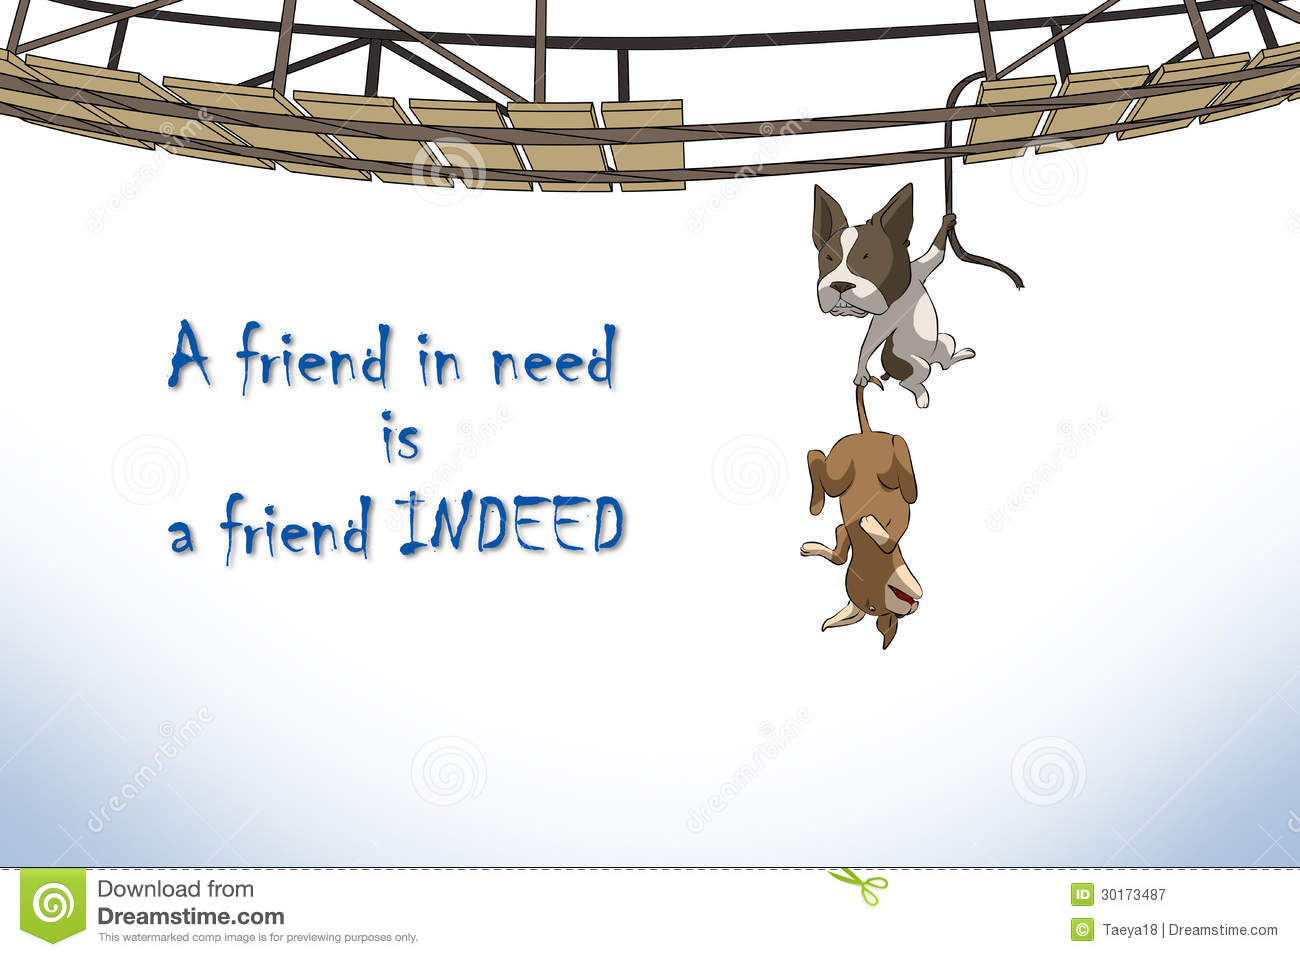 a friend in need is a friend in deed essay 《高中高二作文900字:a friend in need is a friend indeed》由作文大全网发布,关于《高中高二作文900字:a frie 作文 作文大全 高中高二作文900字:a friend in need.